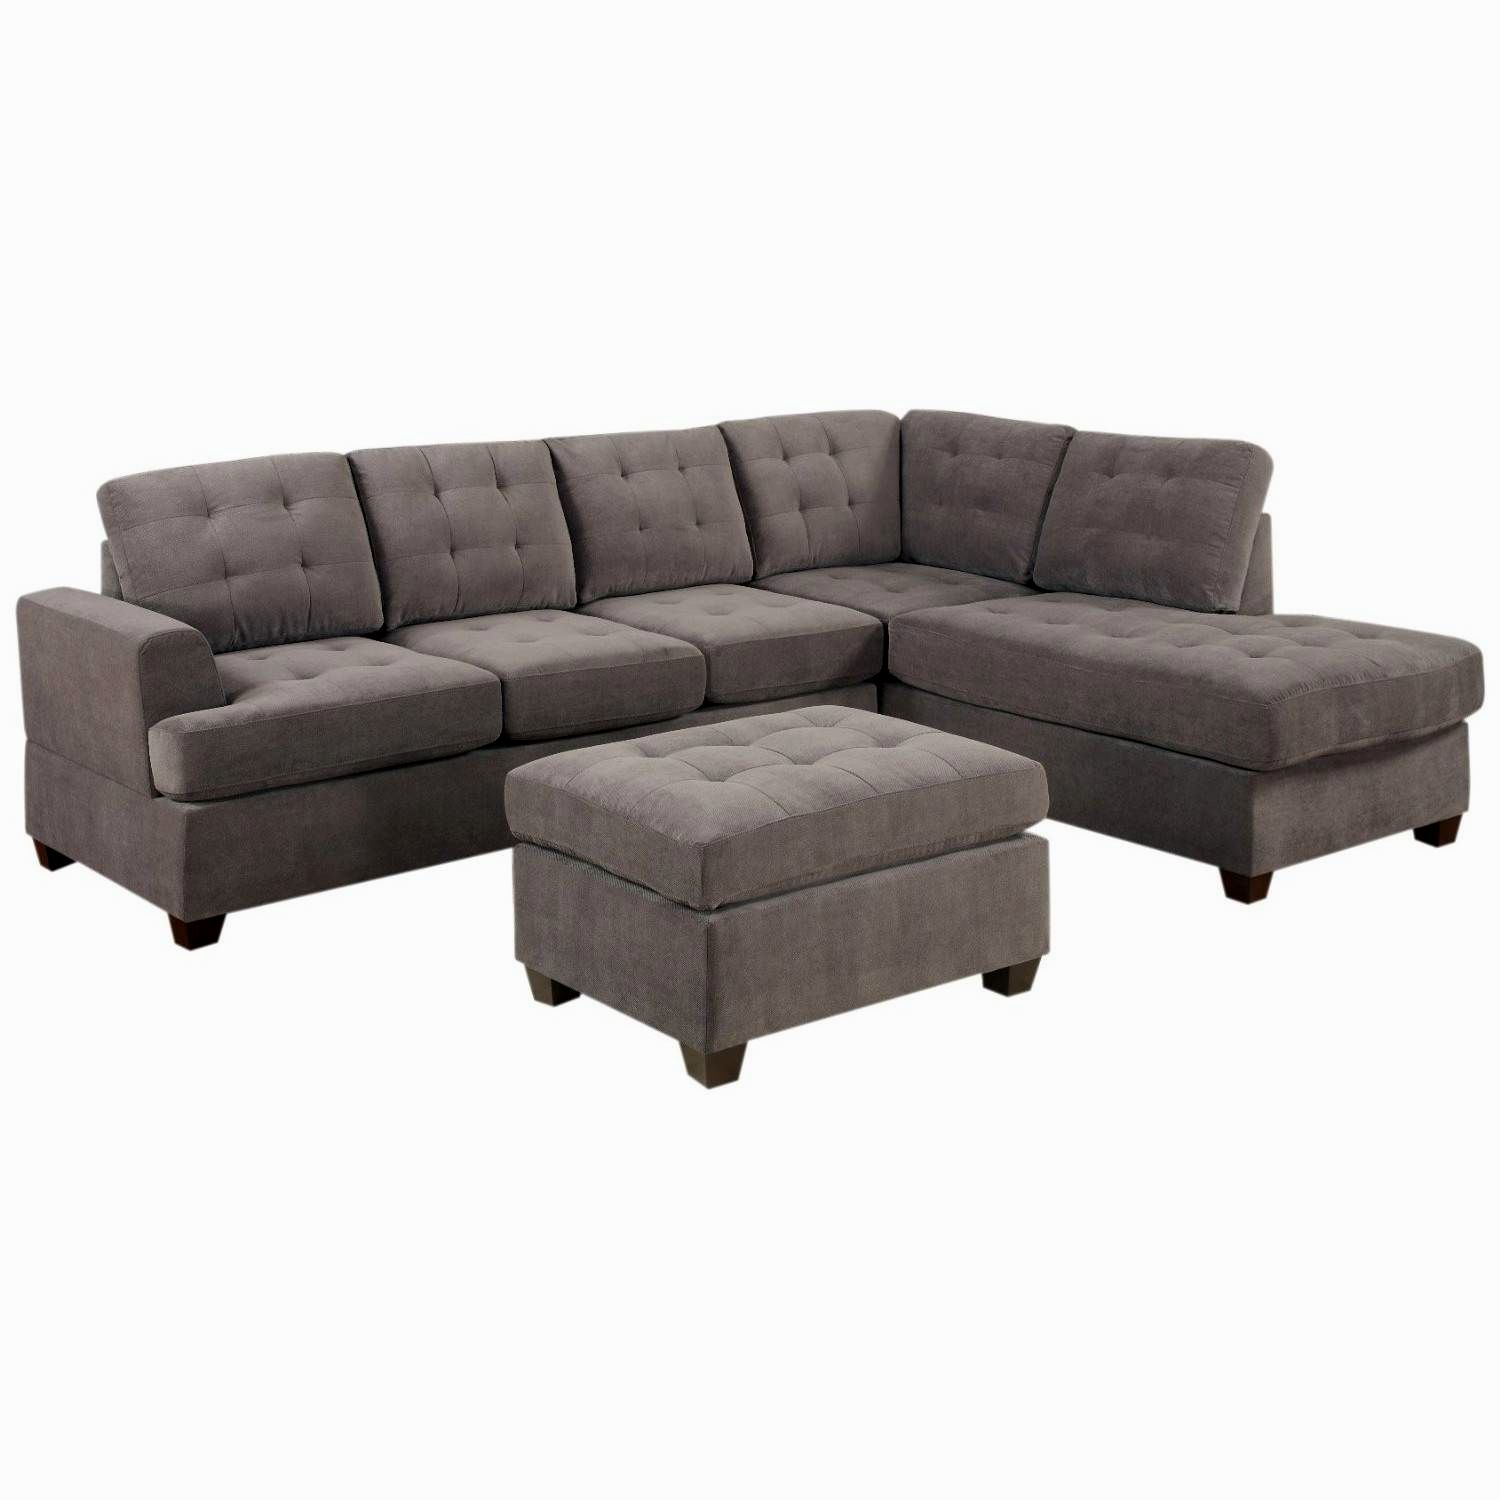 U Sofa Sensational U Sectional Sofa Wallpaper Modern Sofa Design Ideas